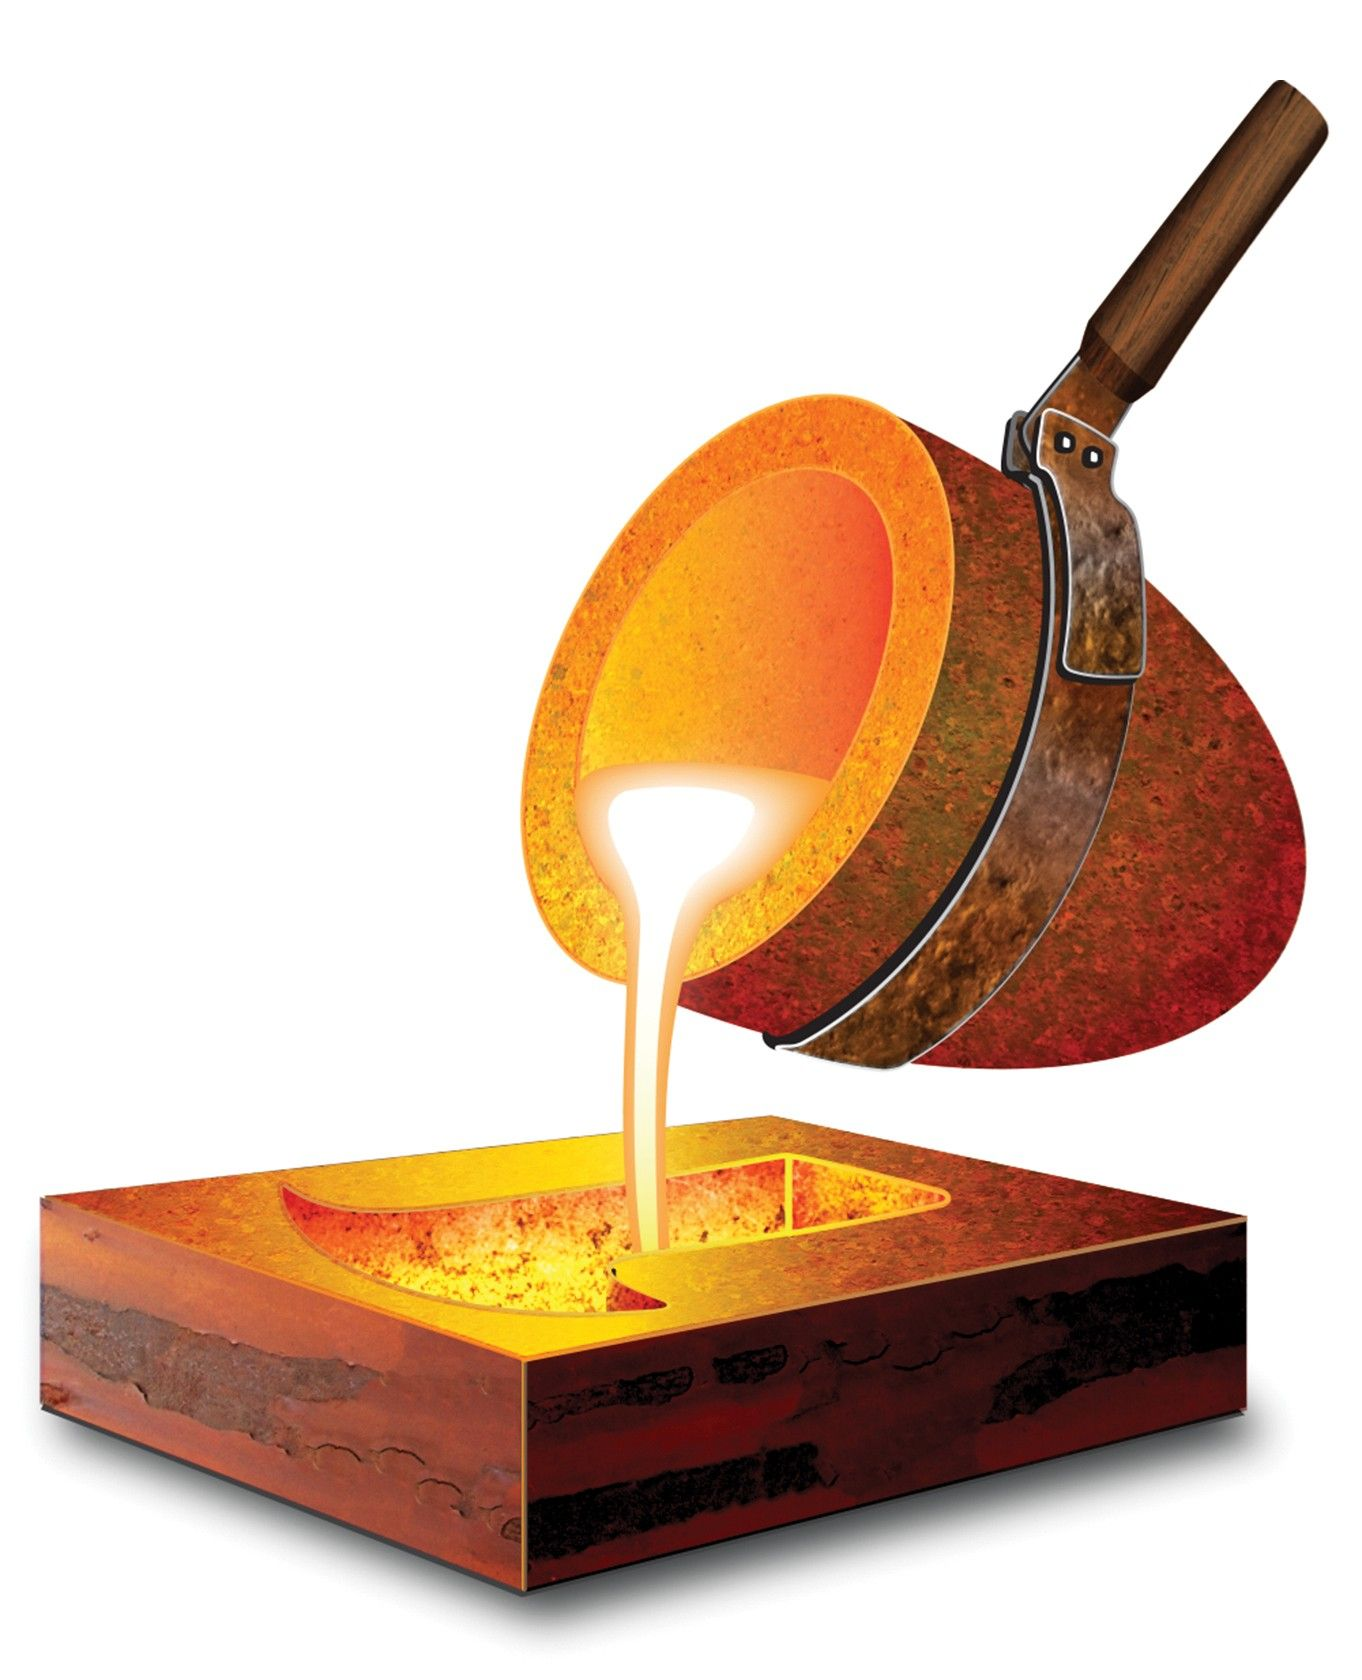 An illustration of molten metal being poured from a crucible into a mold.